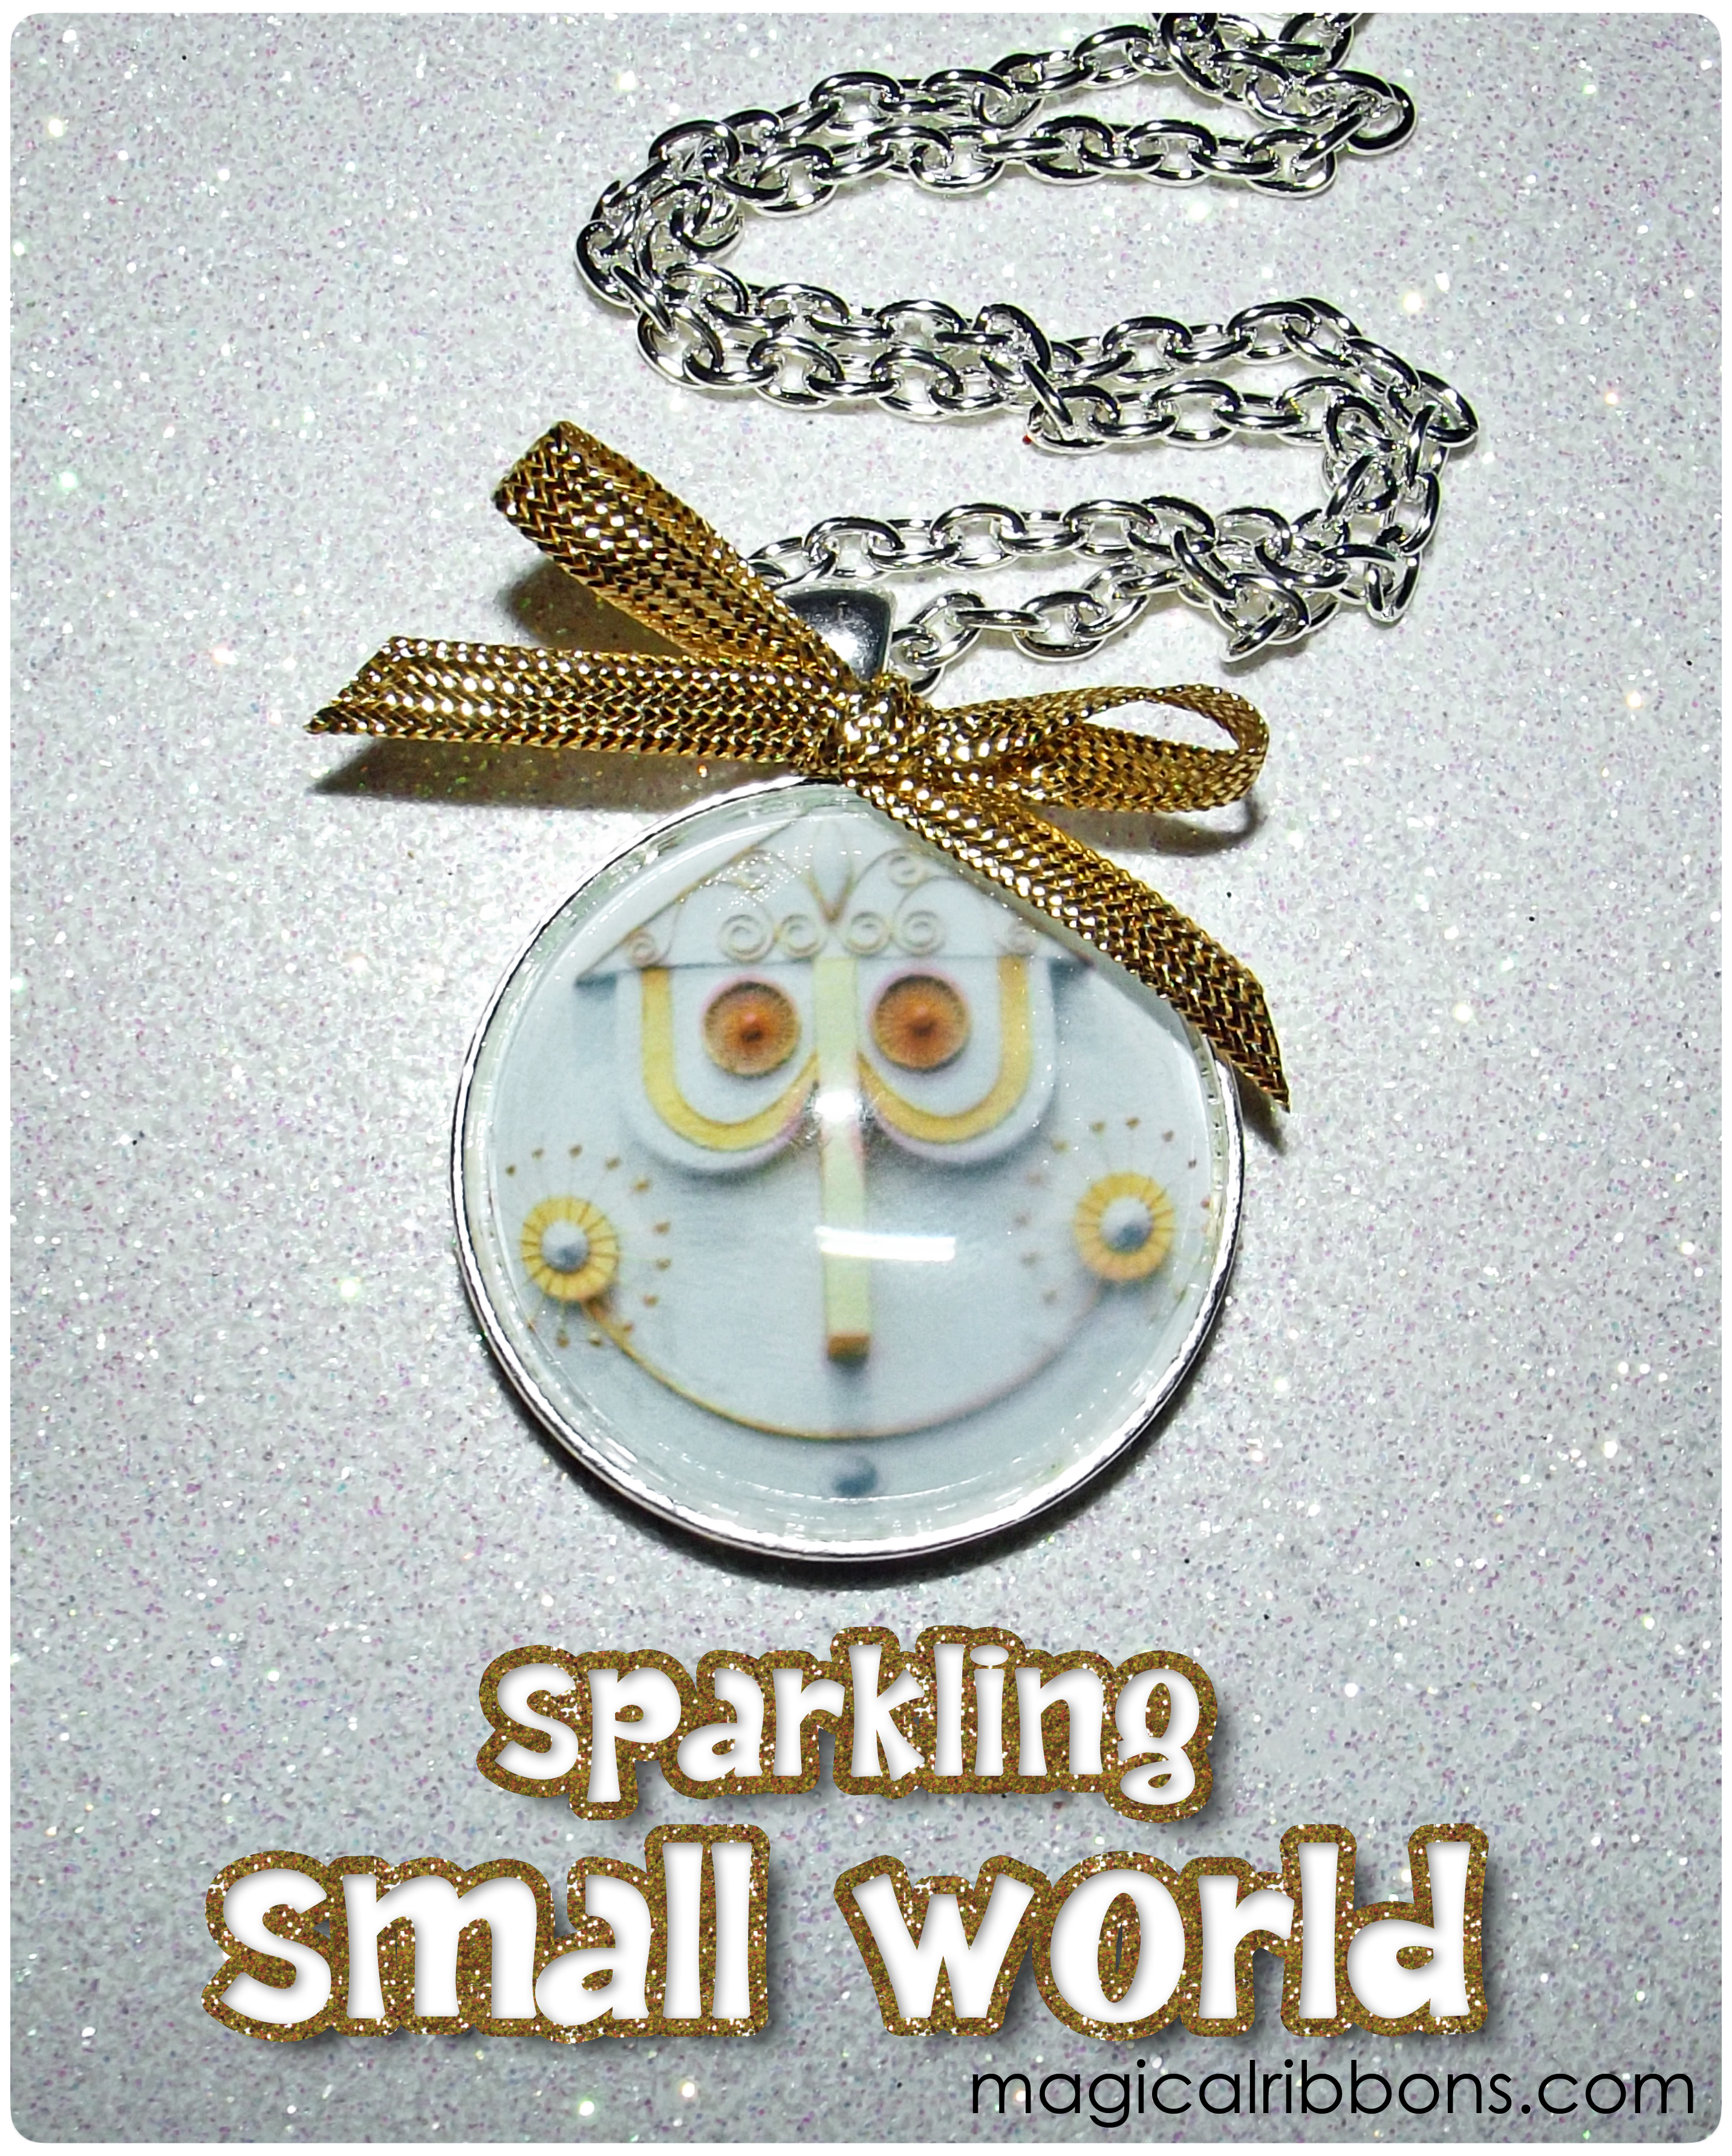 Sparkling Small World Necklace & Keychain